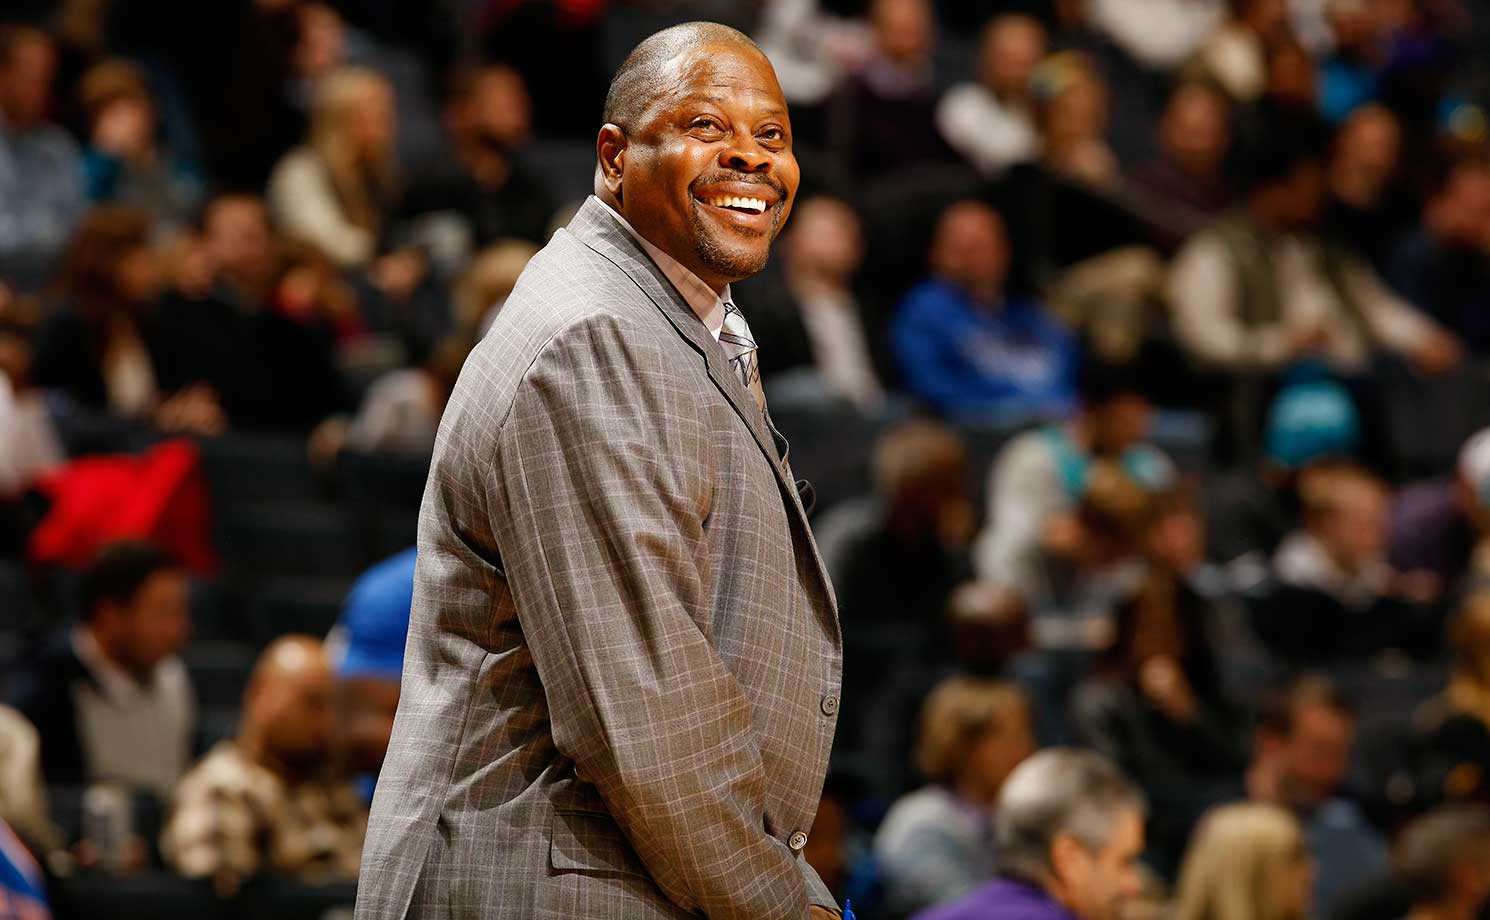 Patrick Ewing, assistant coach of the Charlotte Hornets smiles during the game against the New York Knicks at the Time Warner Cable Arena in Charlotte.